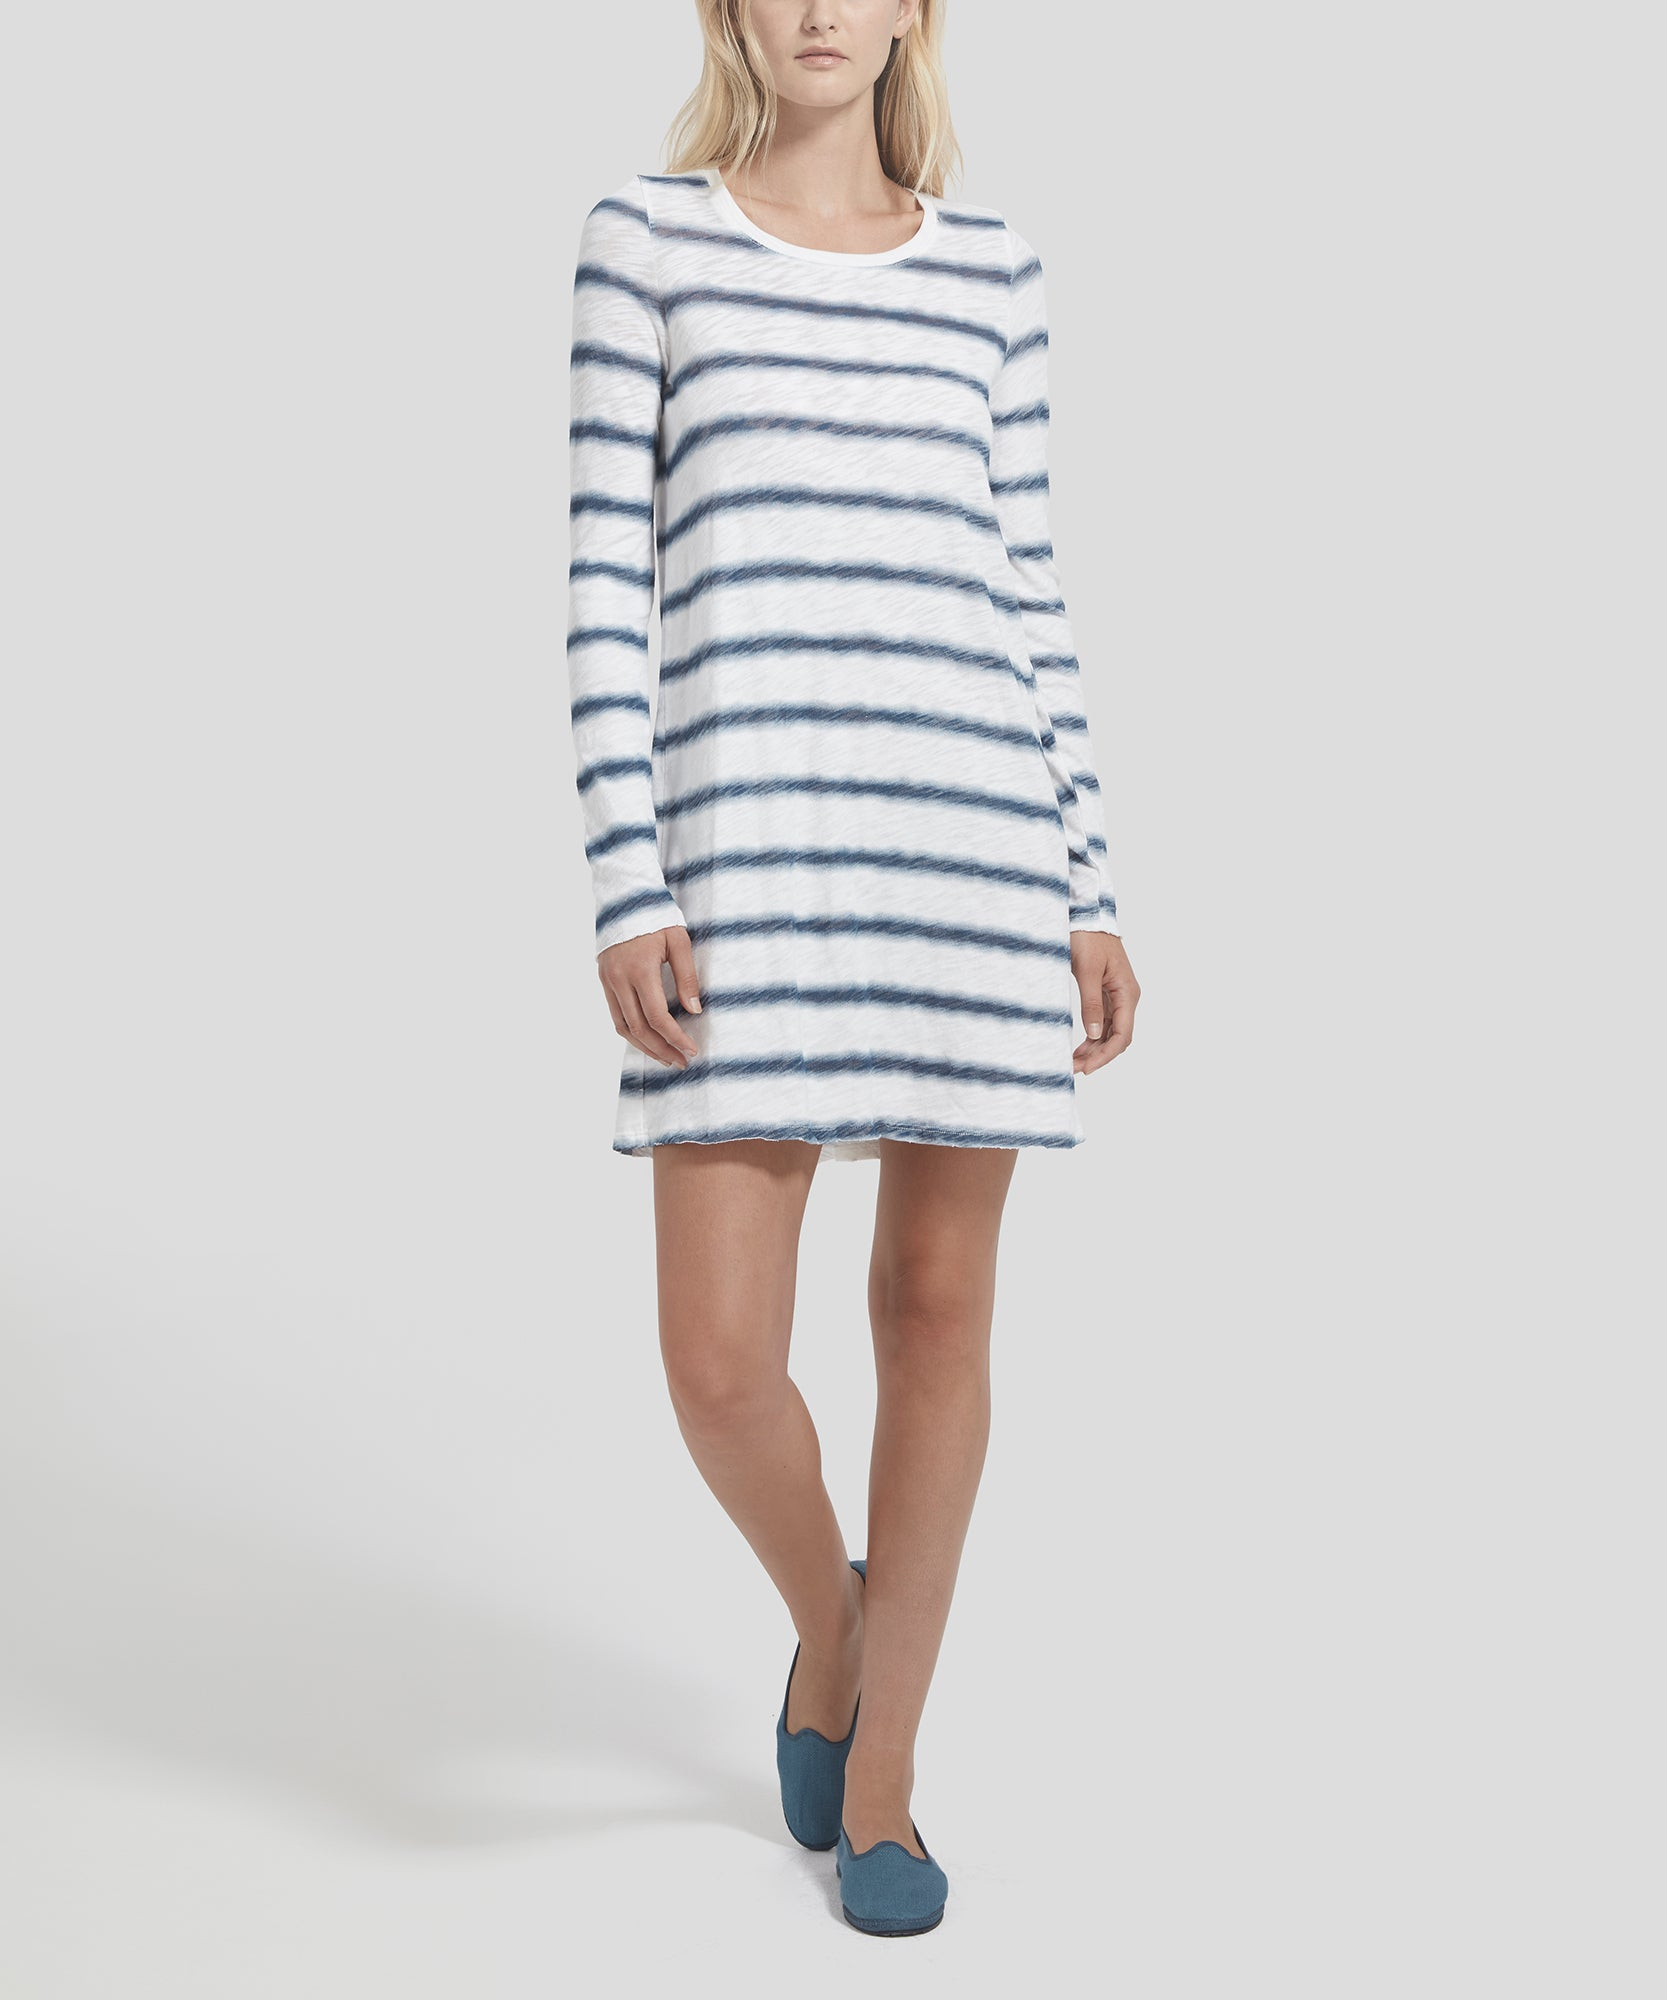 ATM Watermark Stripe Slub Jersey Destroyed Wash Tee Dress